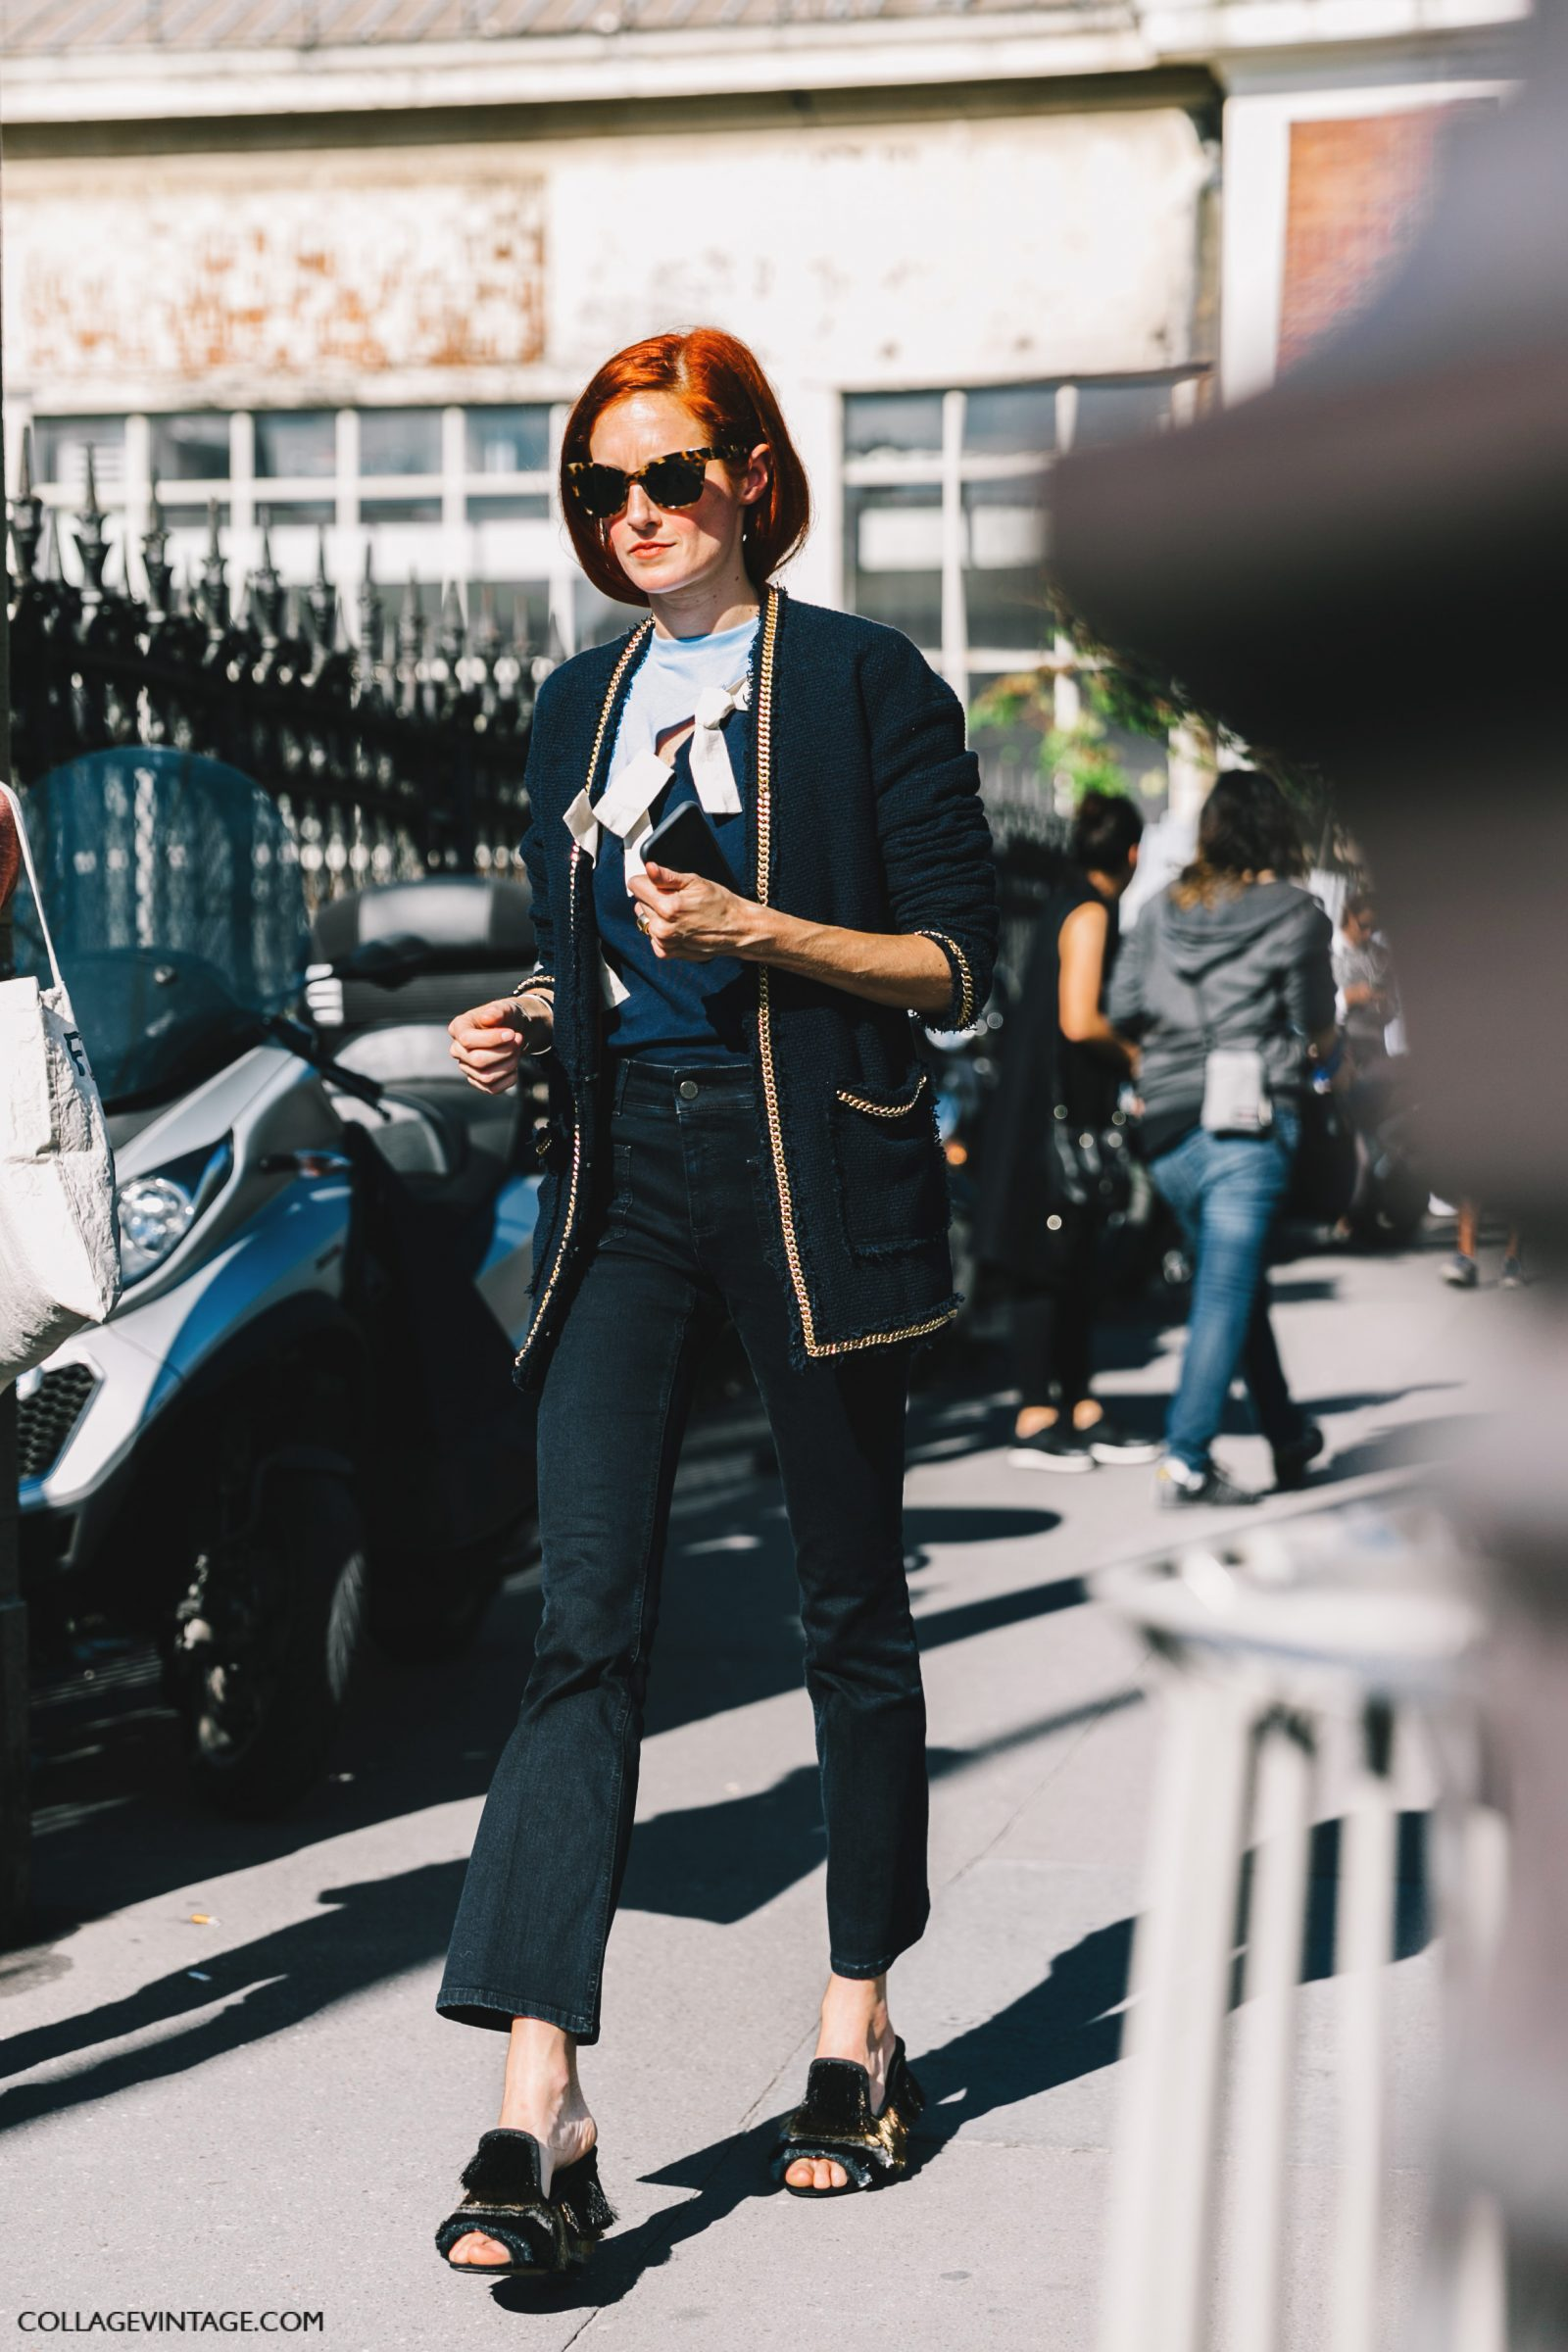 pfw-paris_fashion_week_ss17-street_style-outfits-collage_vintage-rochas-courreges-dries_van_noten-lanvin-guy_laroche-190